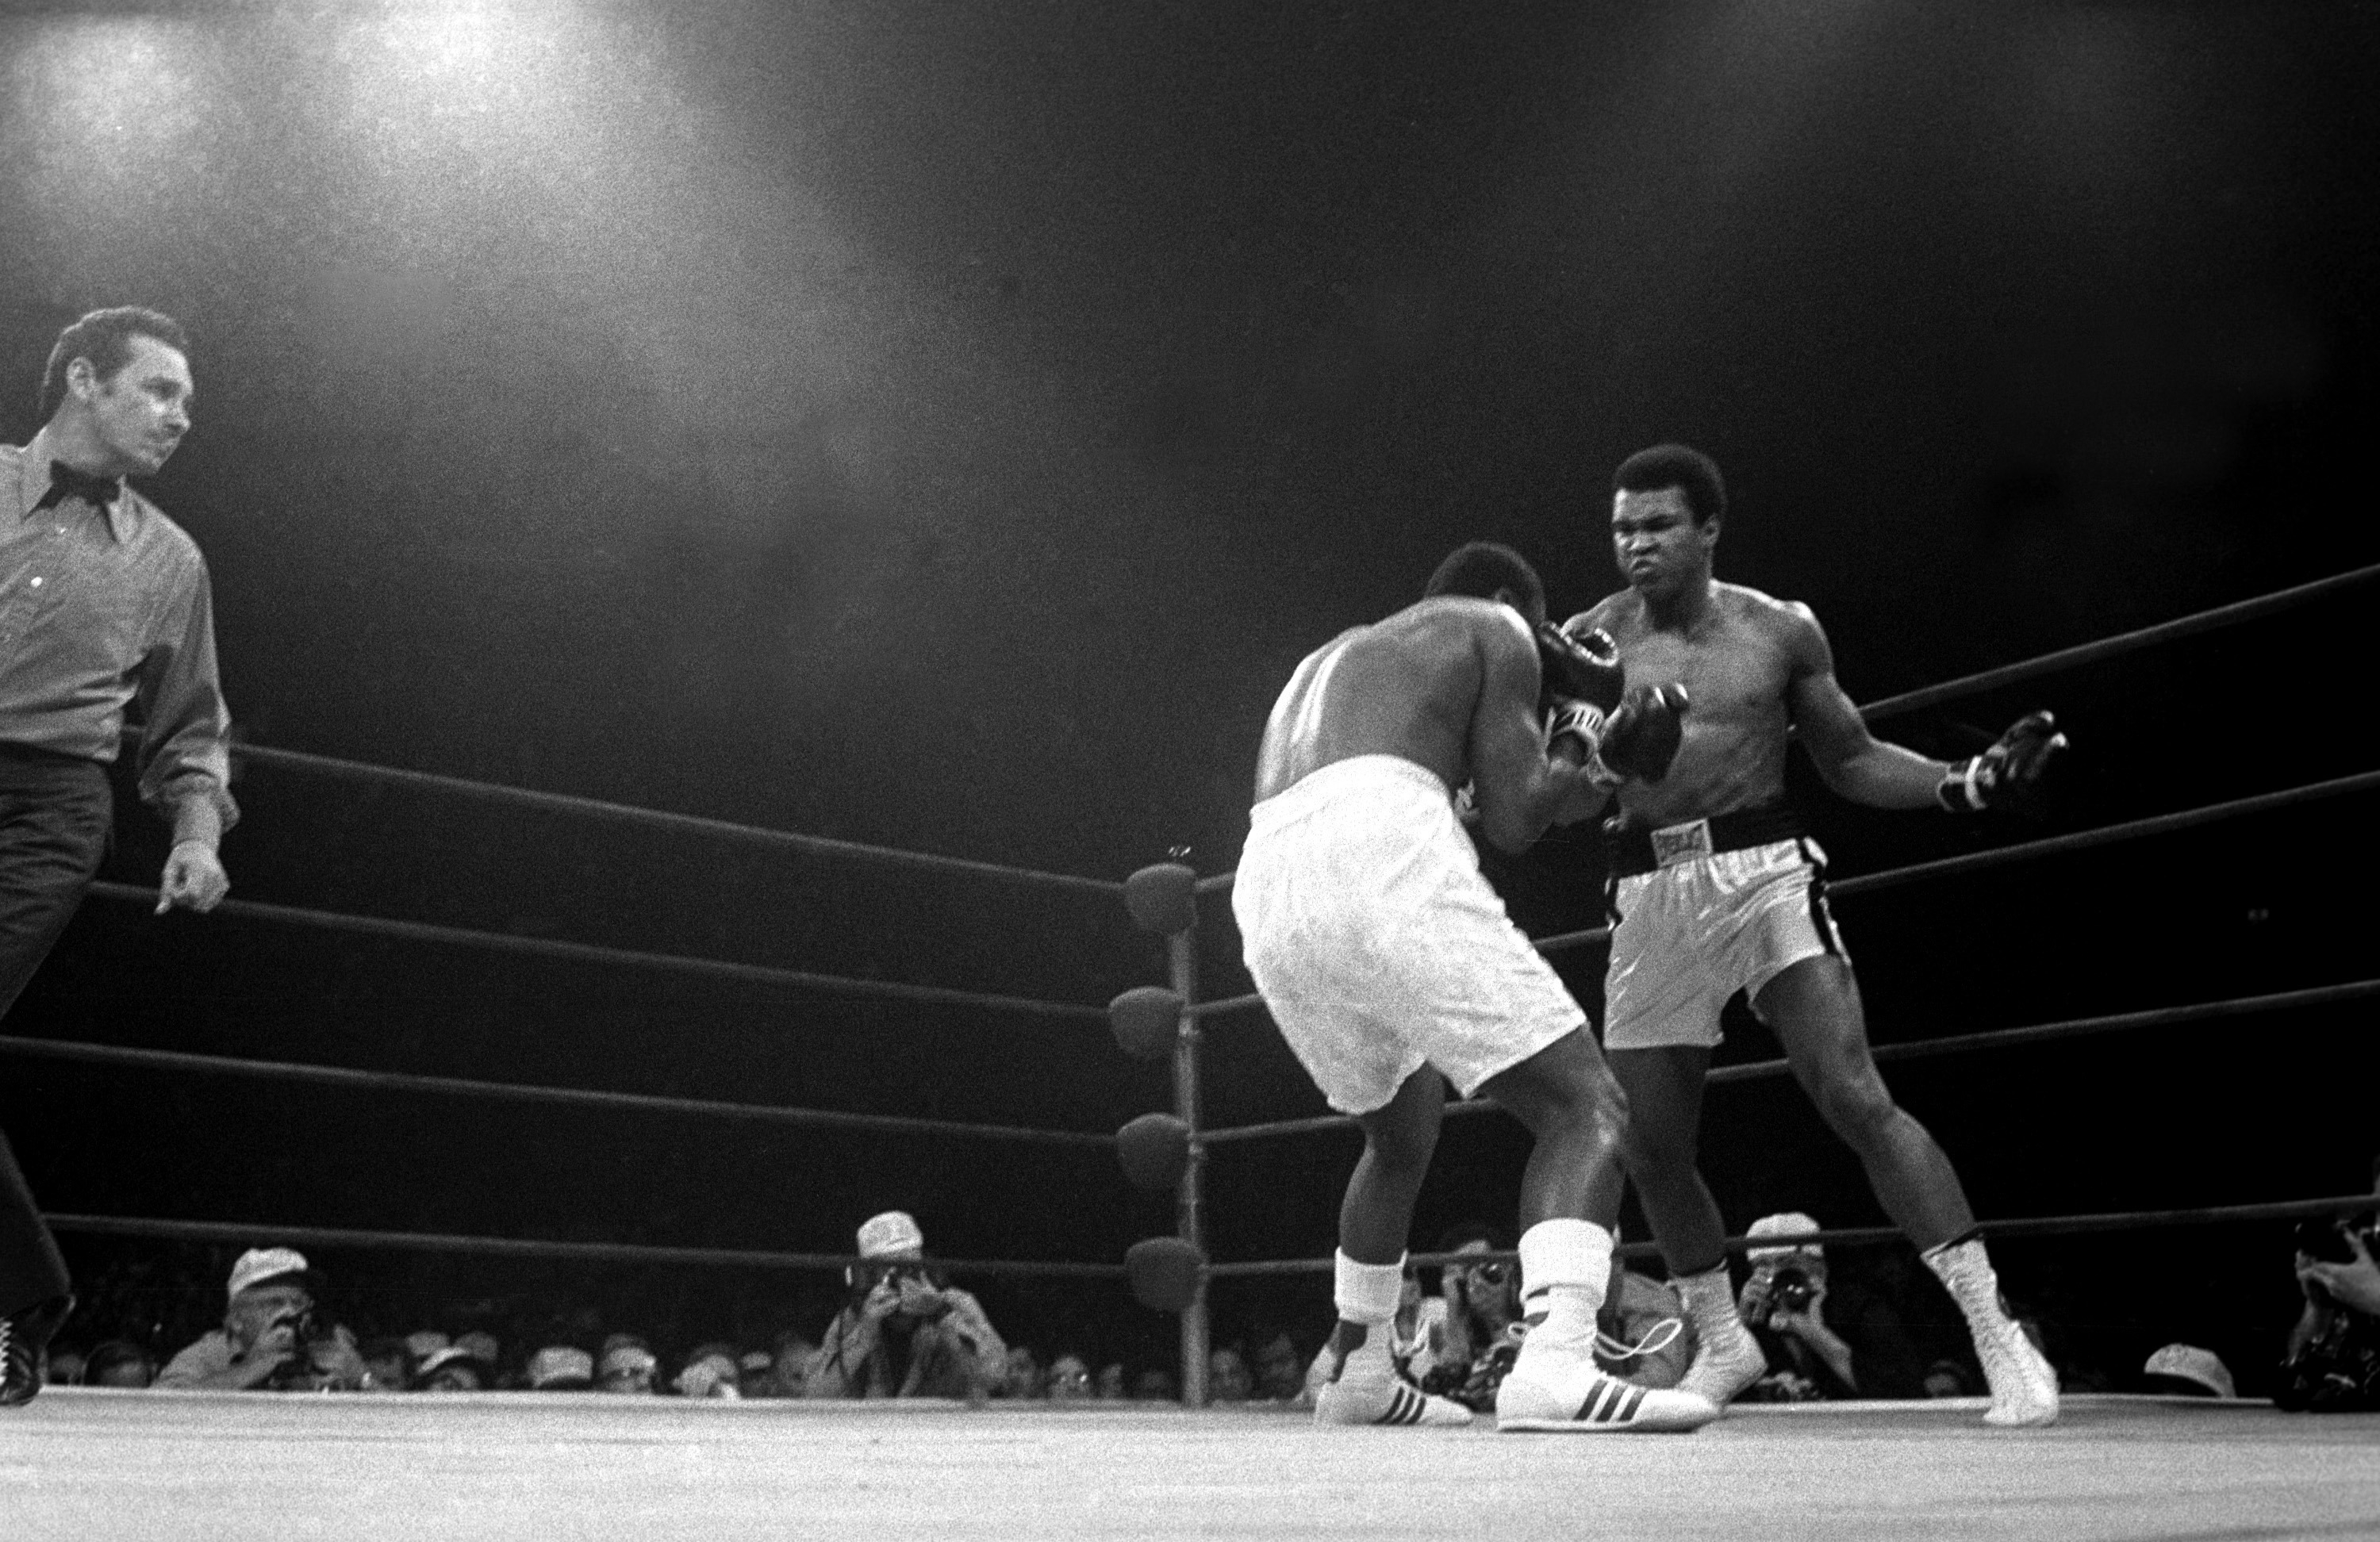 Muhammad Ali fought, and defeated, Joe Frazier in the second of their three fights at Madison Square Garden in 1974.